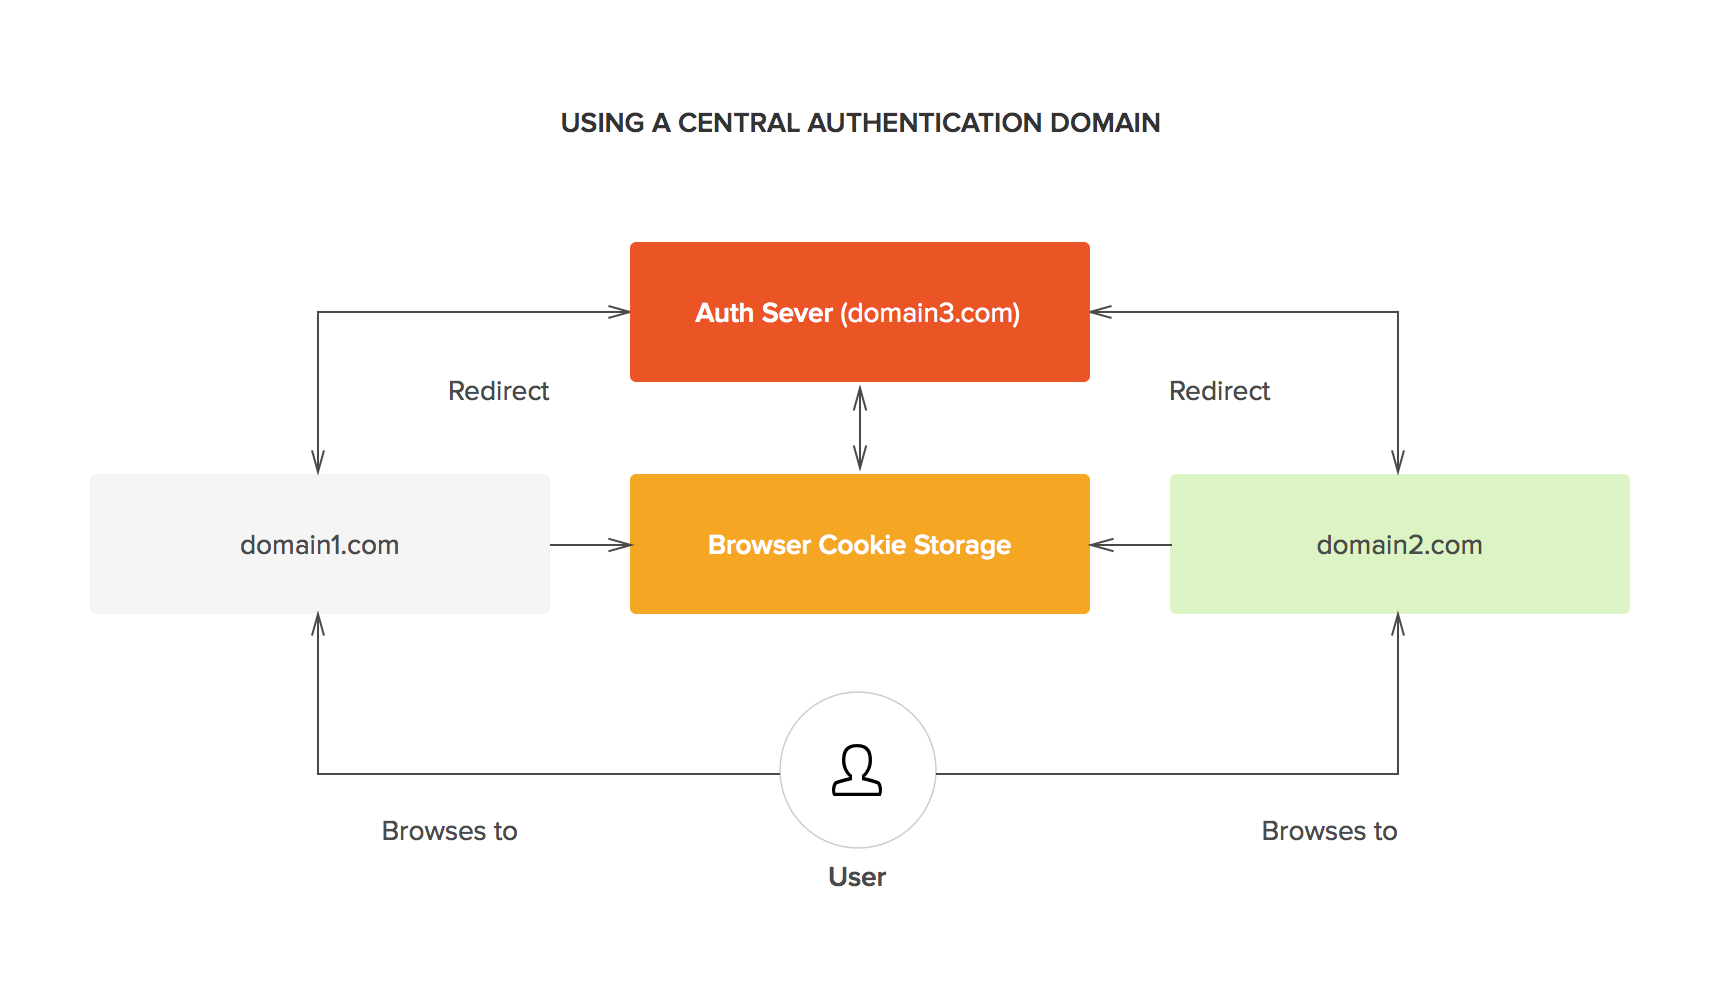 SSO - Central authentication domain